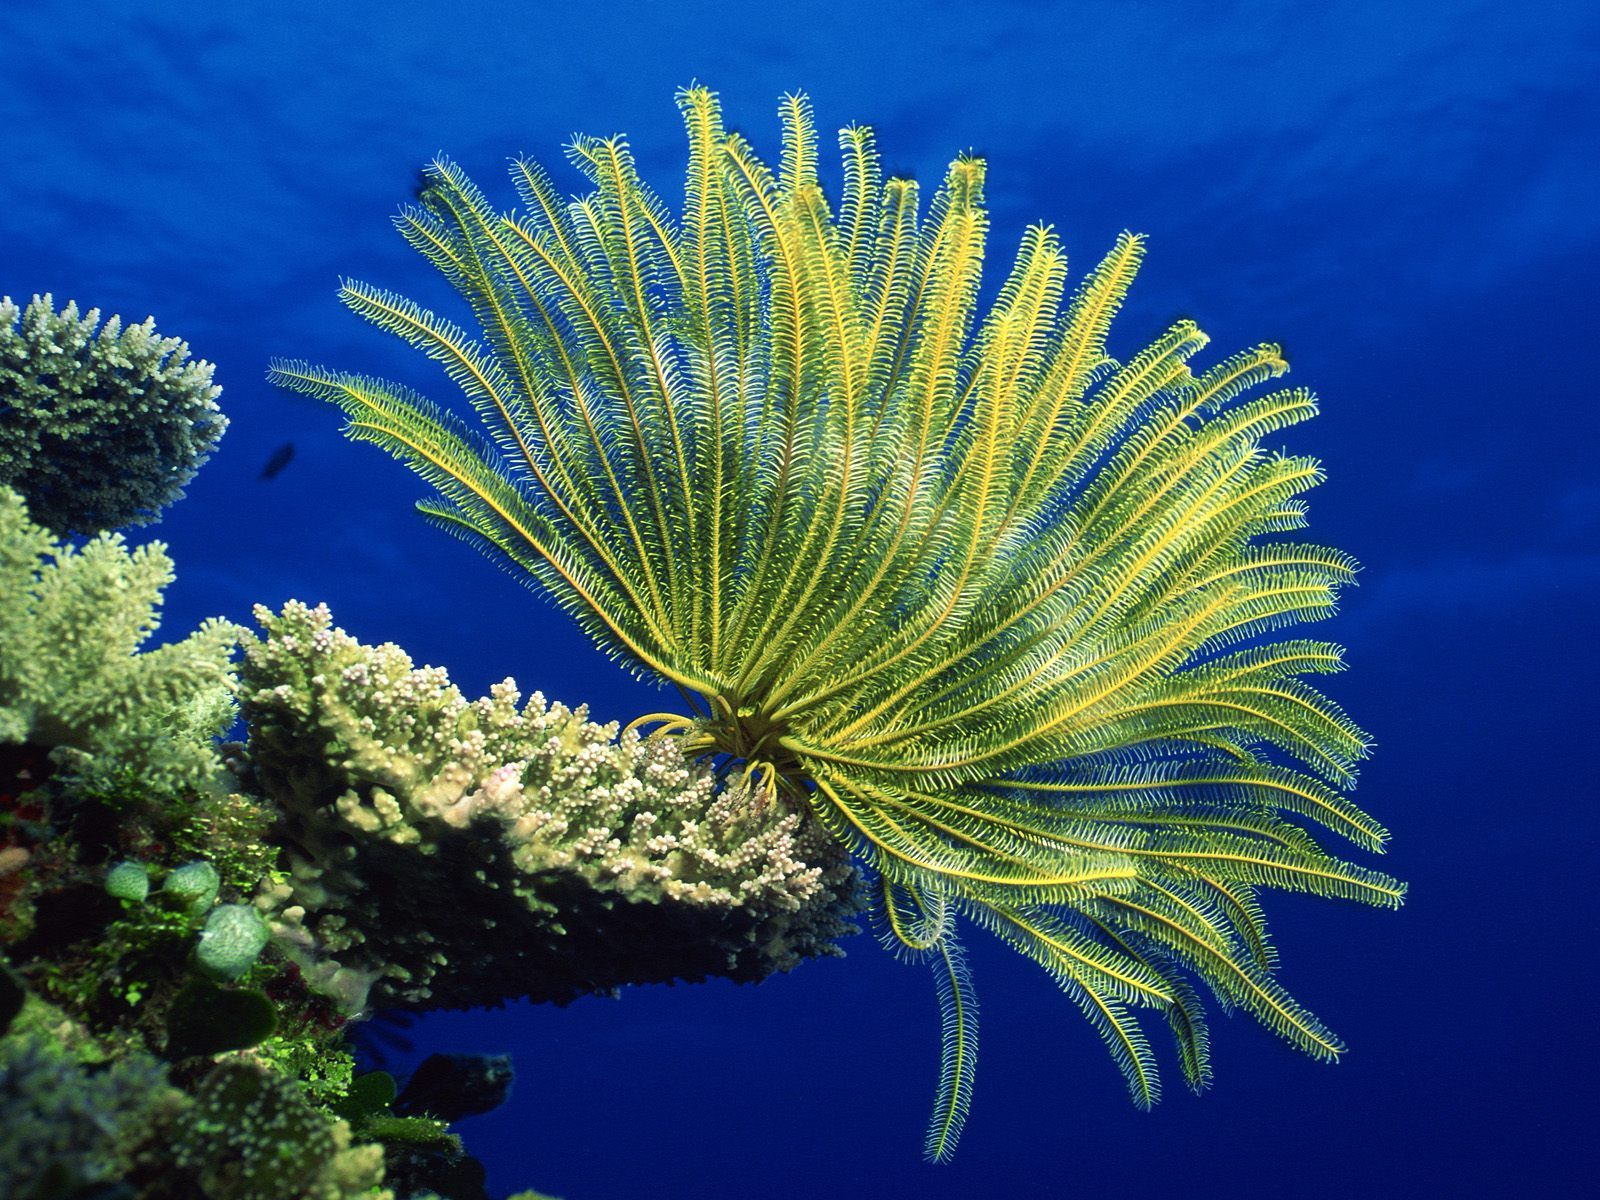 Warming Seas and Corals: A New Conundrum THE COSMOS NEWS